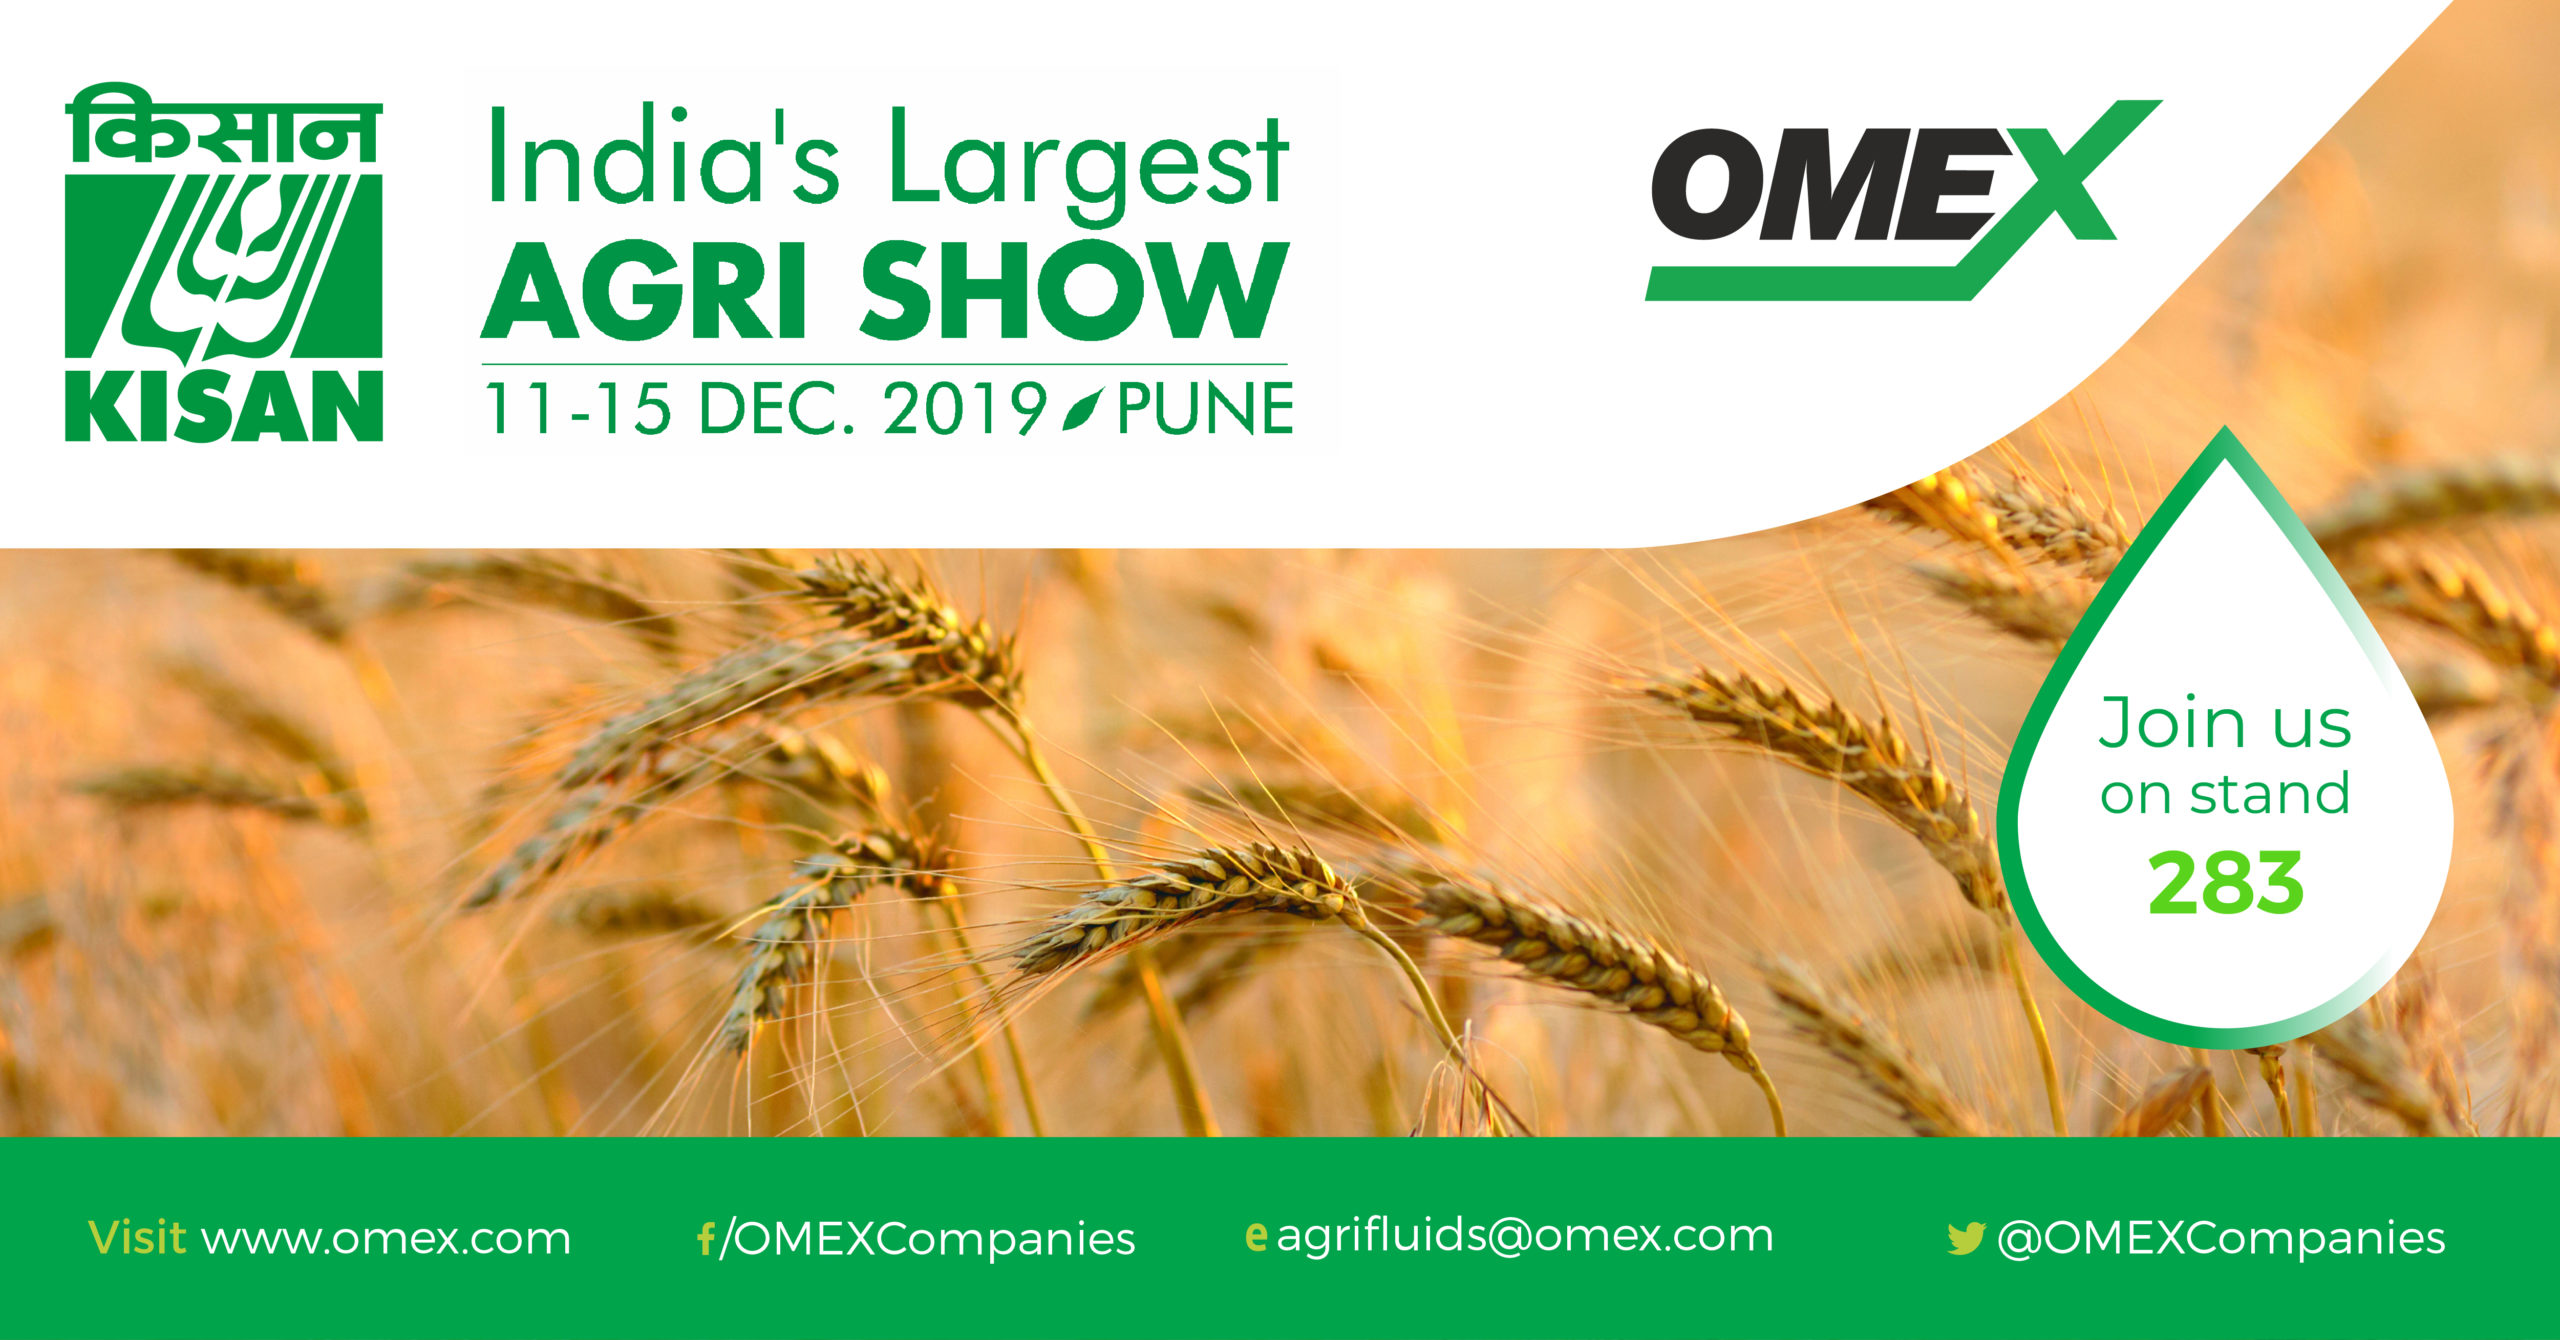 Visit us at India's Largest Agri Show